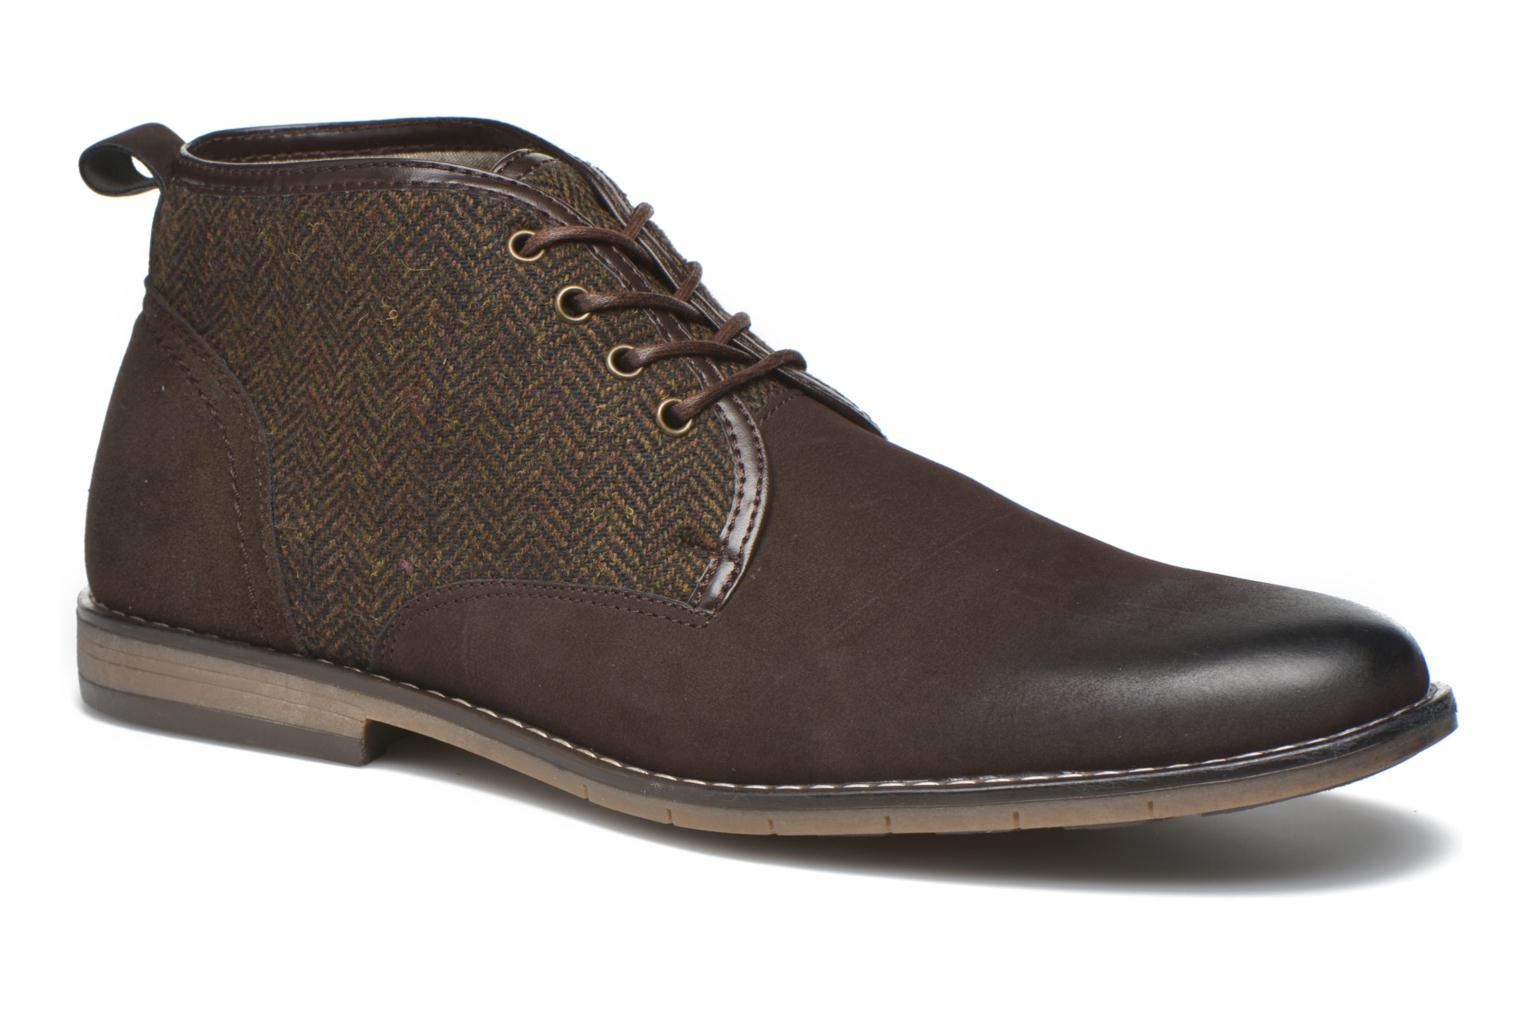 Marques Chaussure homme I Love Shoes homme SUPESUKKA Noir